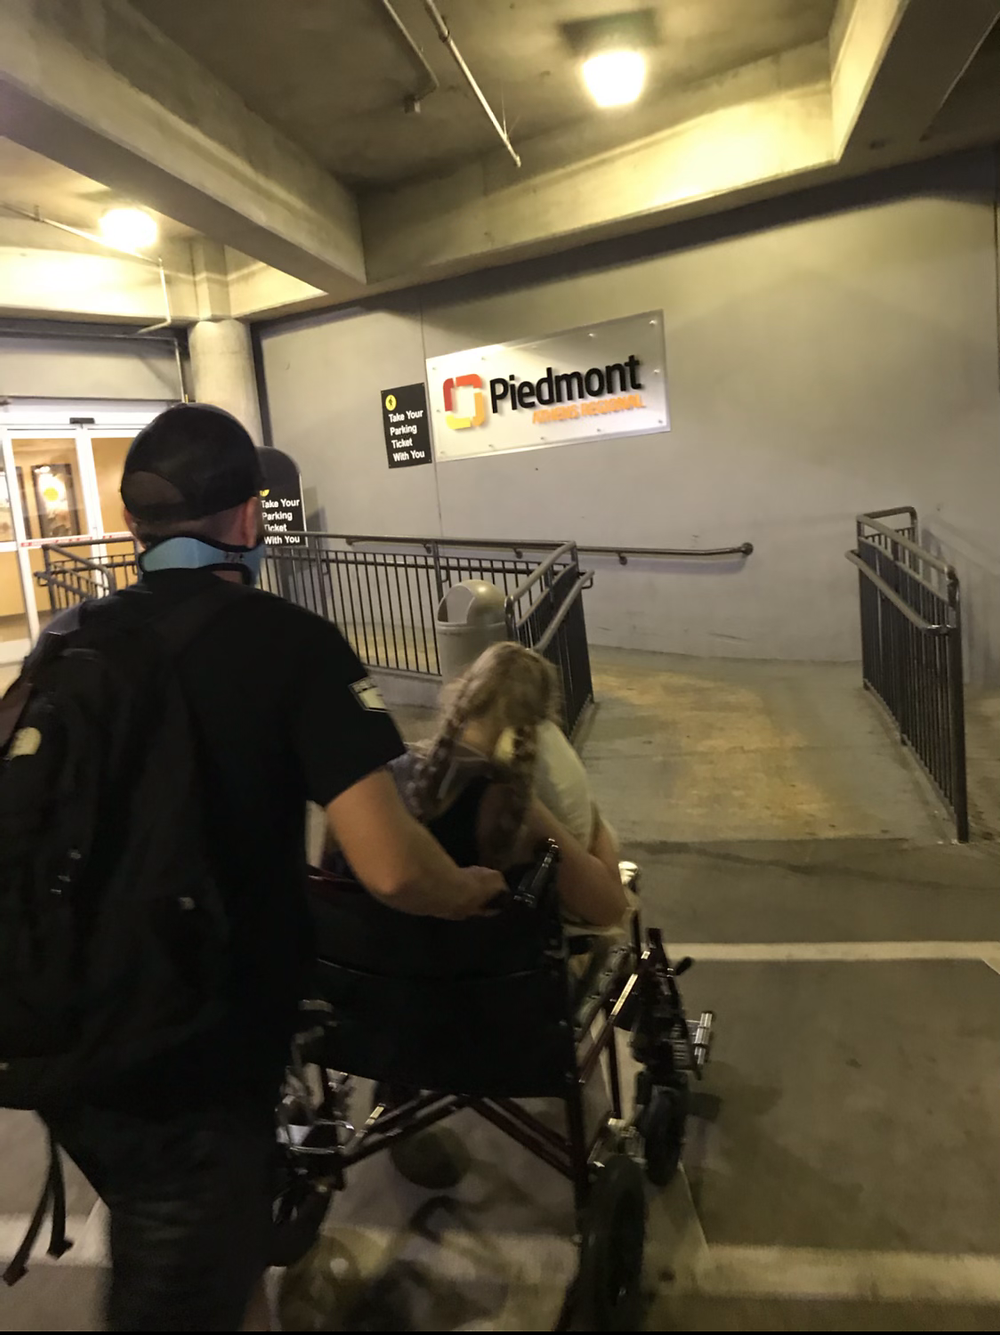 Laboring mom has urge to push in hospital parking deck